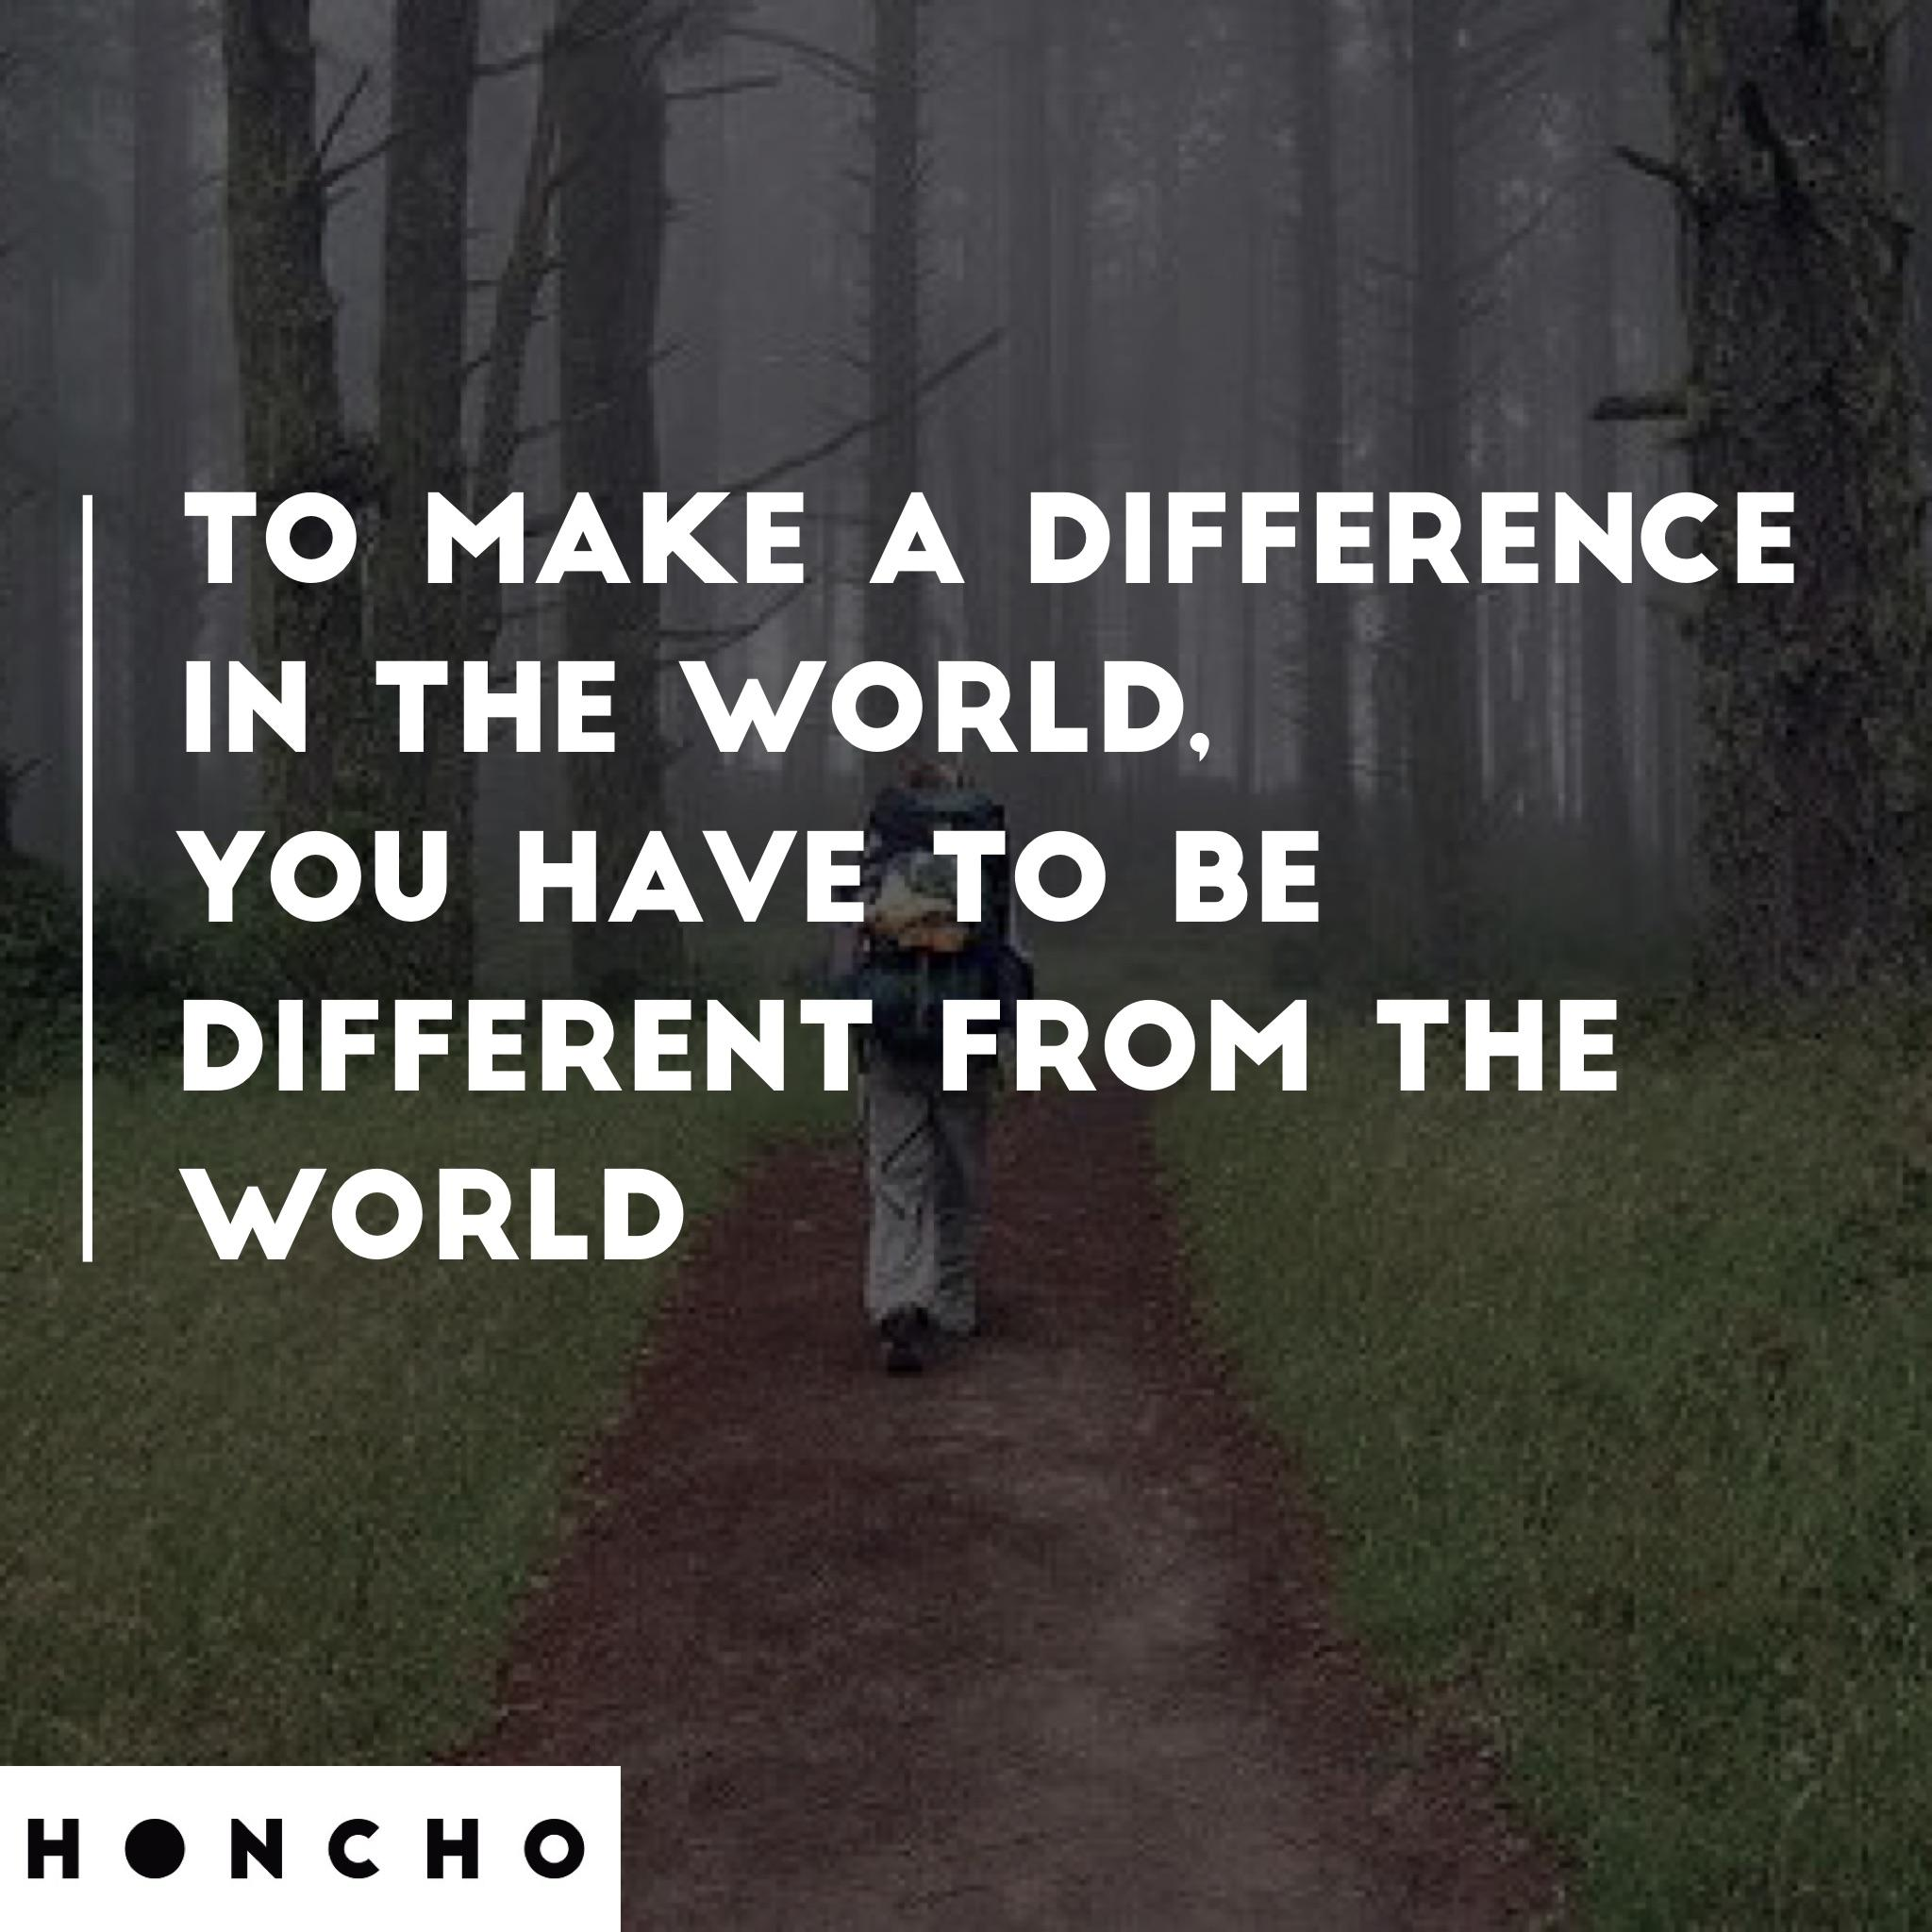 [image] Be different from the world